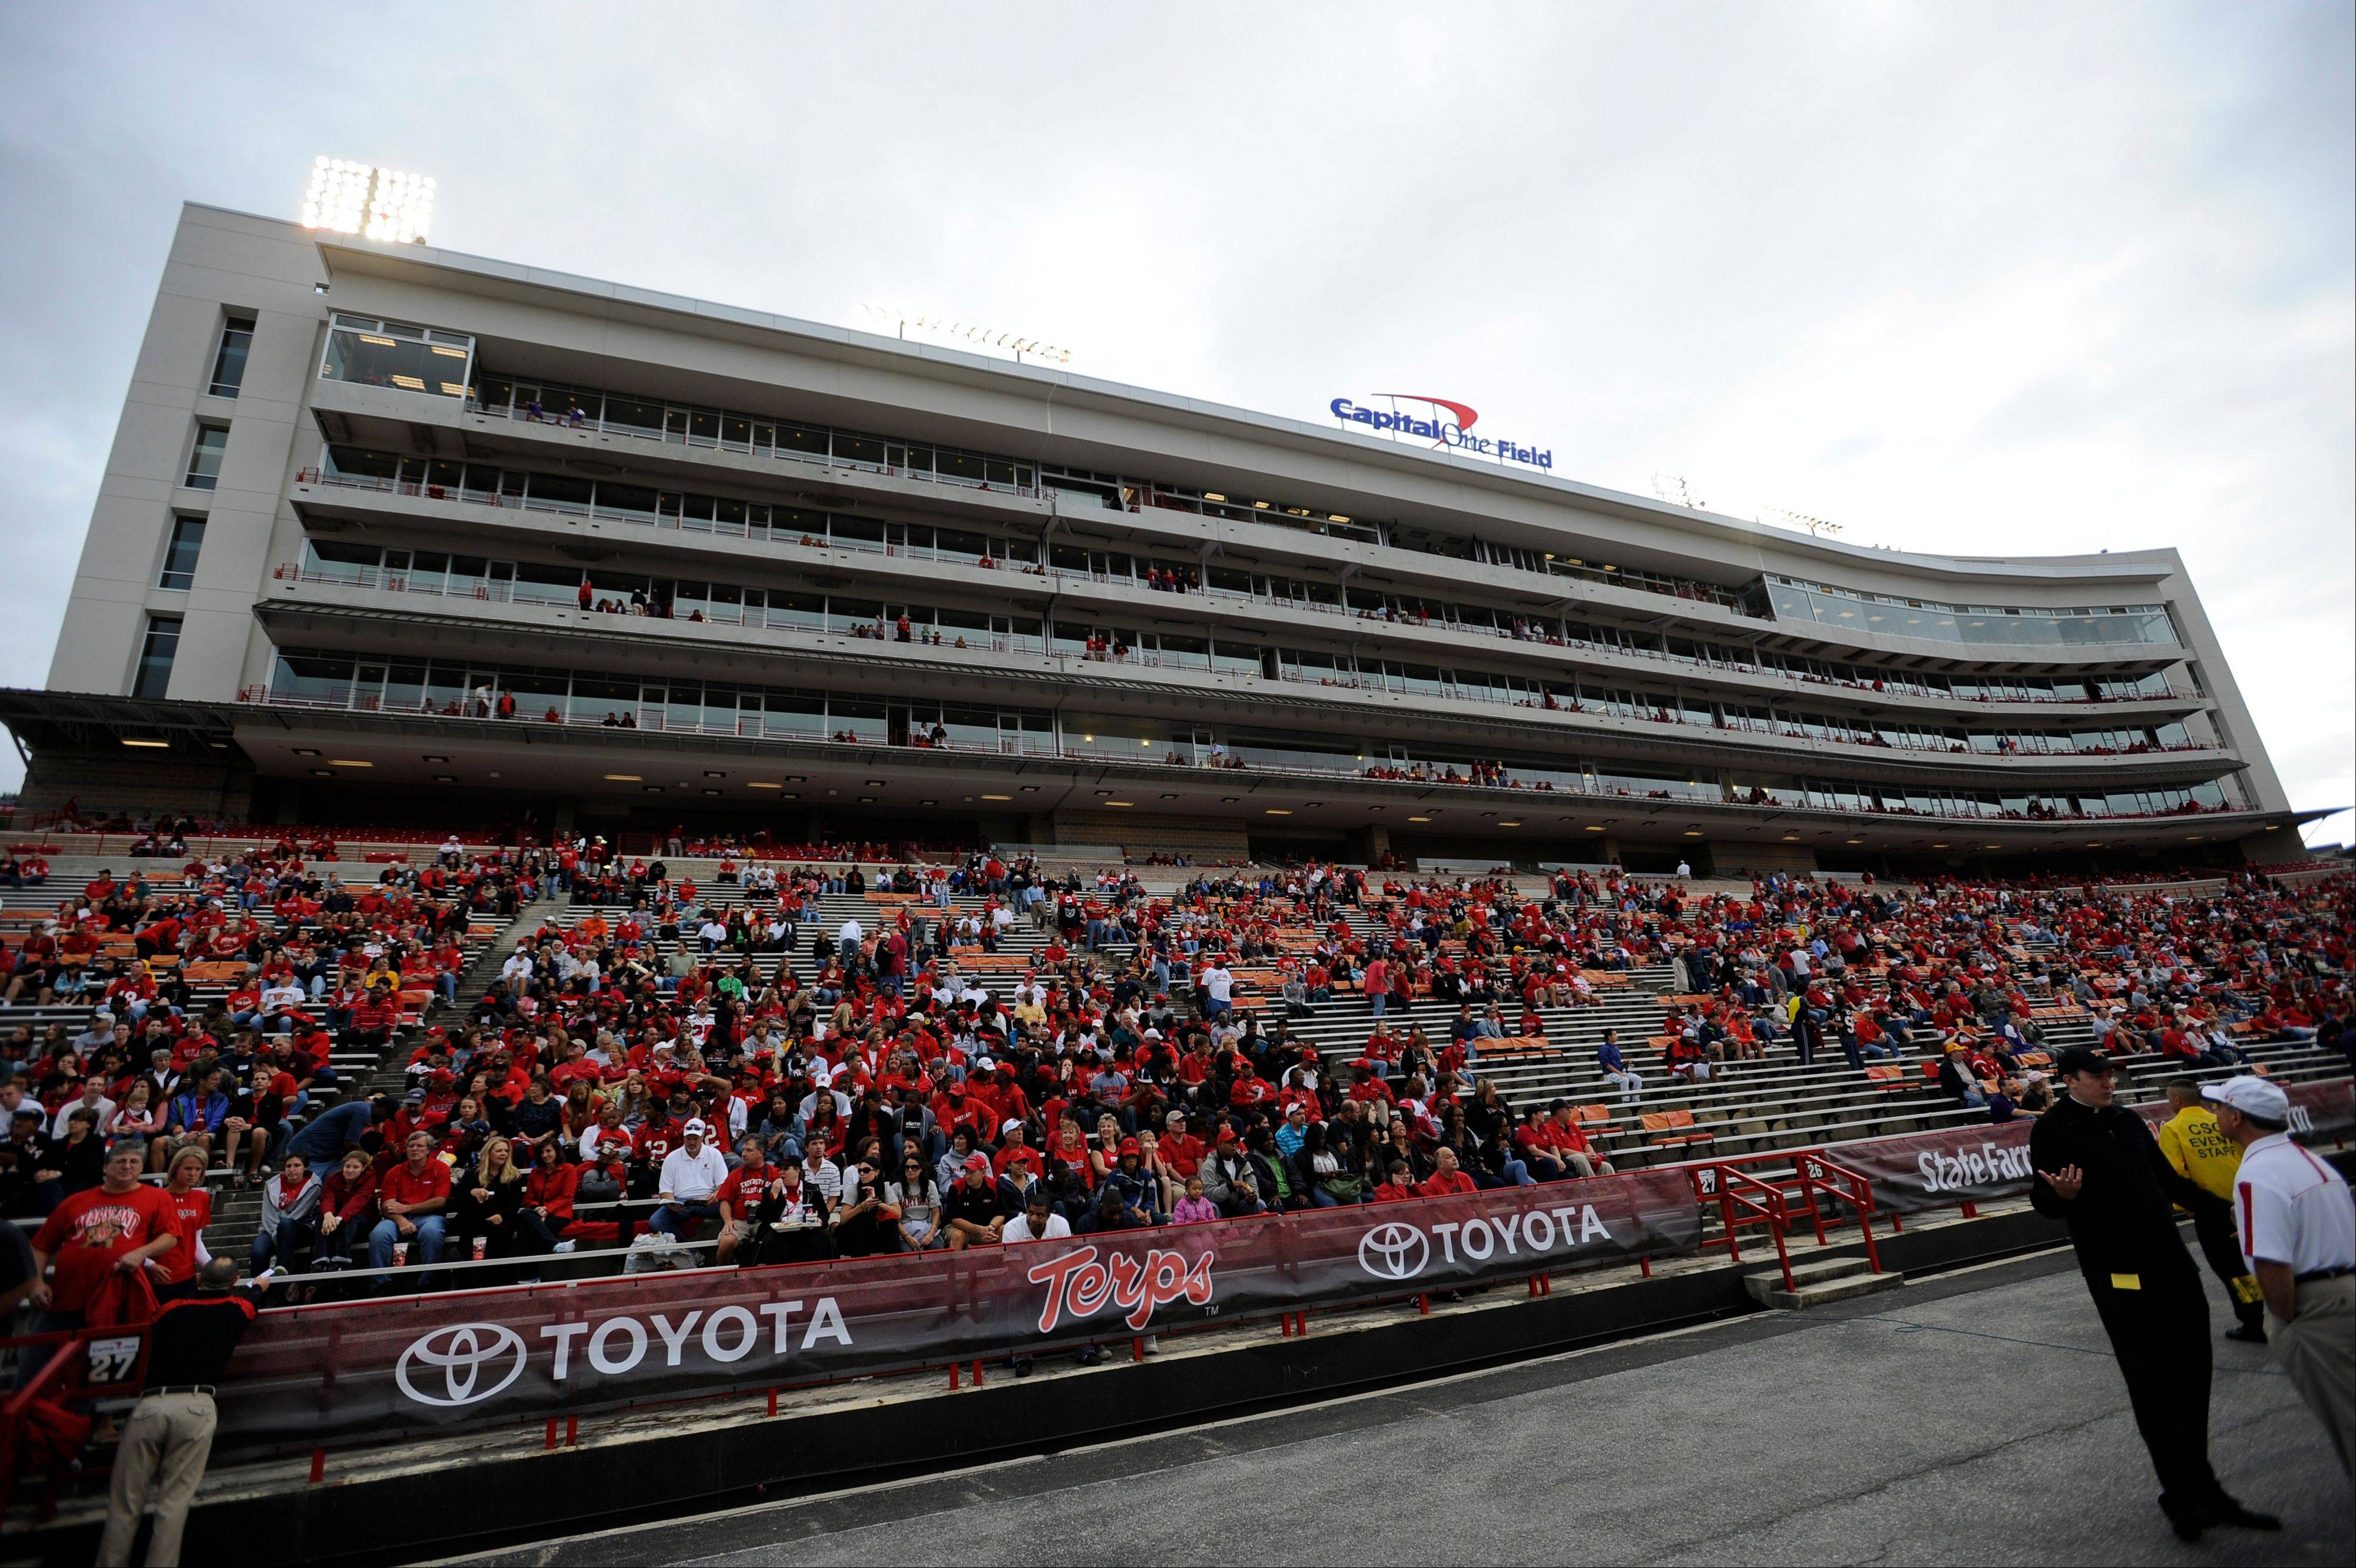 This Sept. 12, 2009 file photo shows Tyser Tower where suites and the press box are located at Capital One Field at Byrd Stadium before an NCAA college football game between Maryland and James Madison in College Park, Md. Maryland is joining the Big Ten, which will give the conference a foothold in the East.